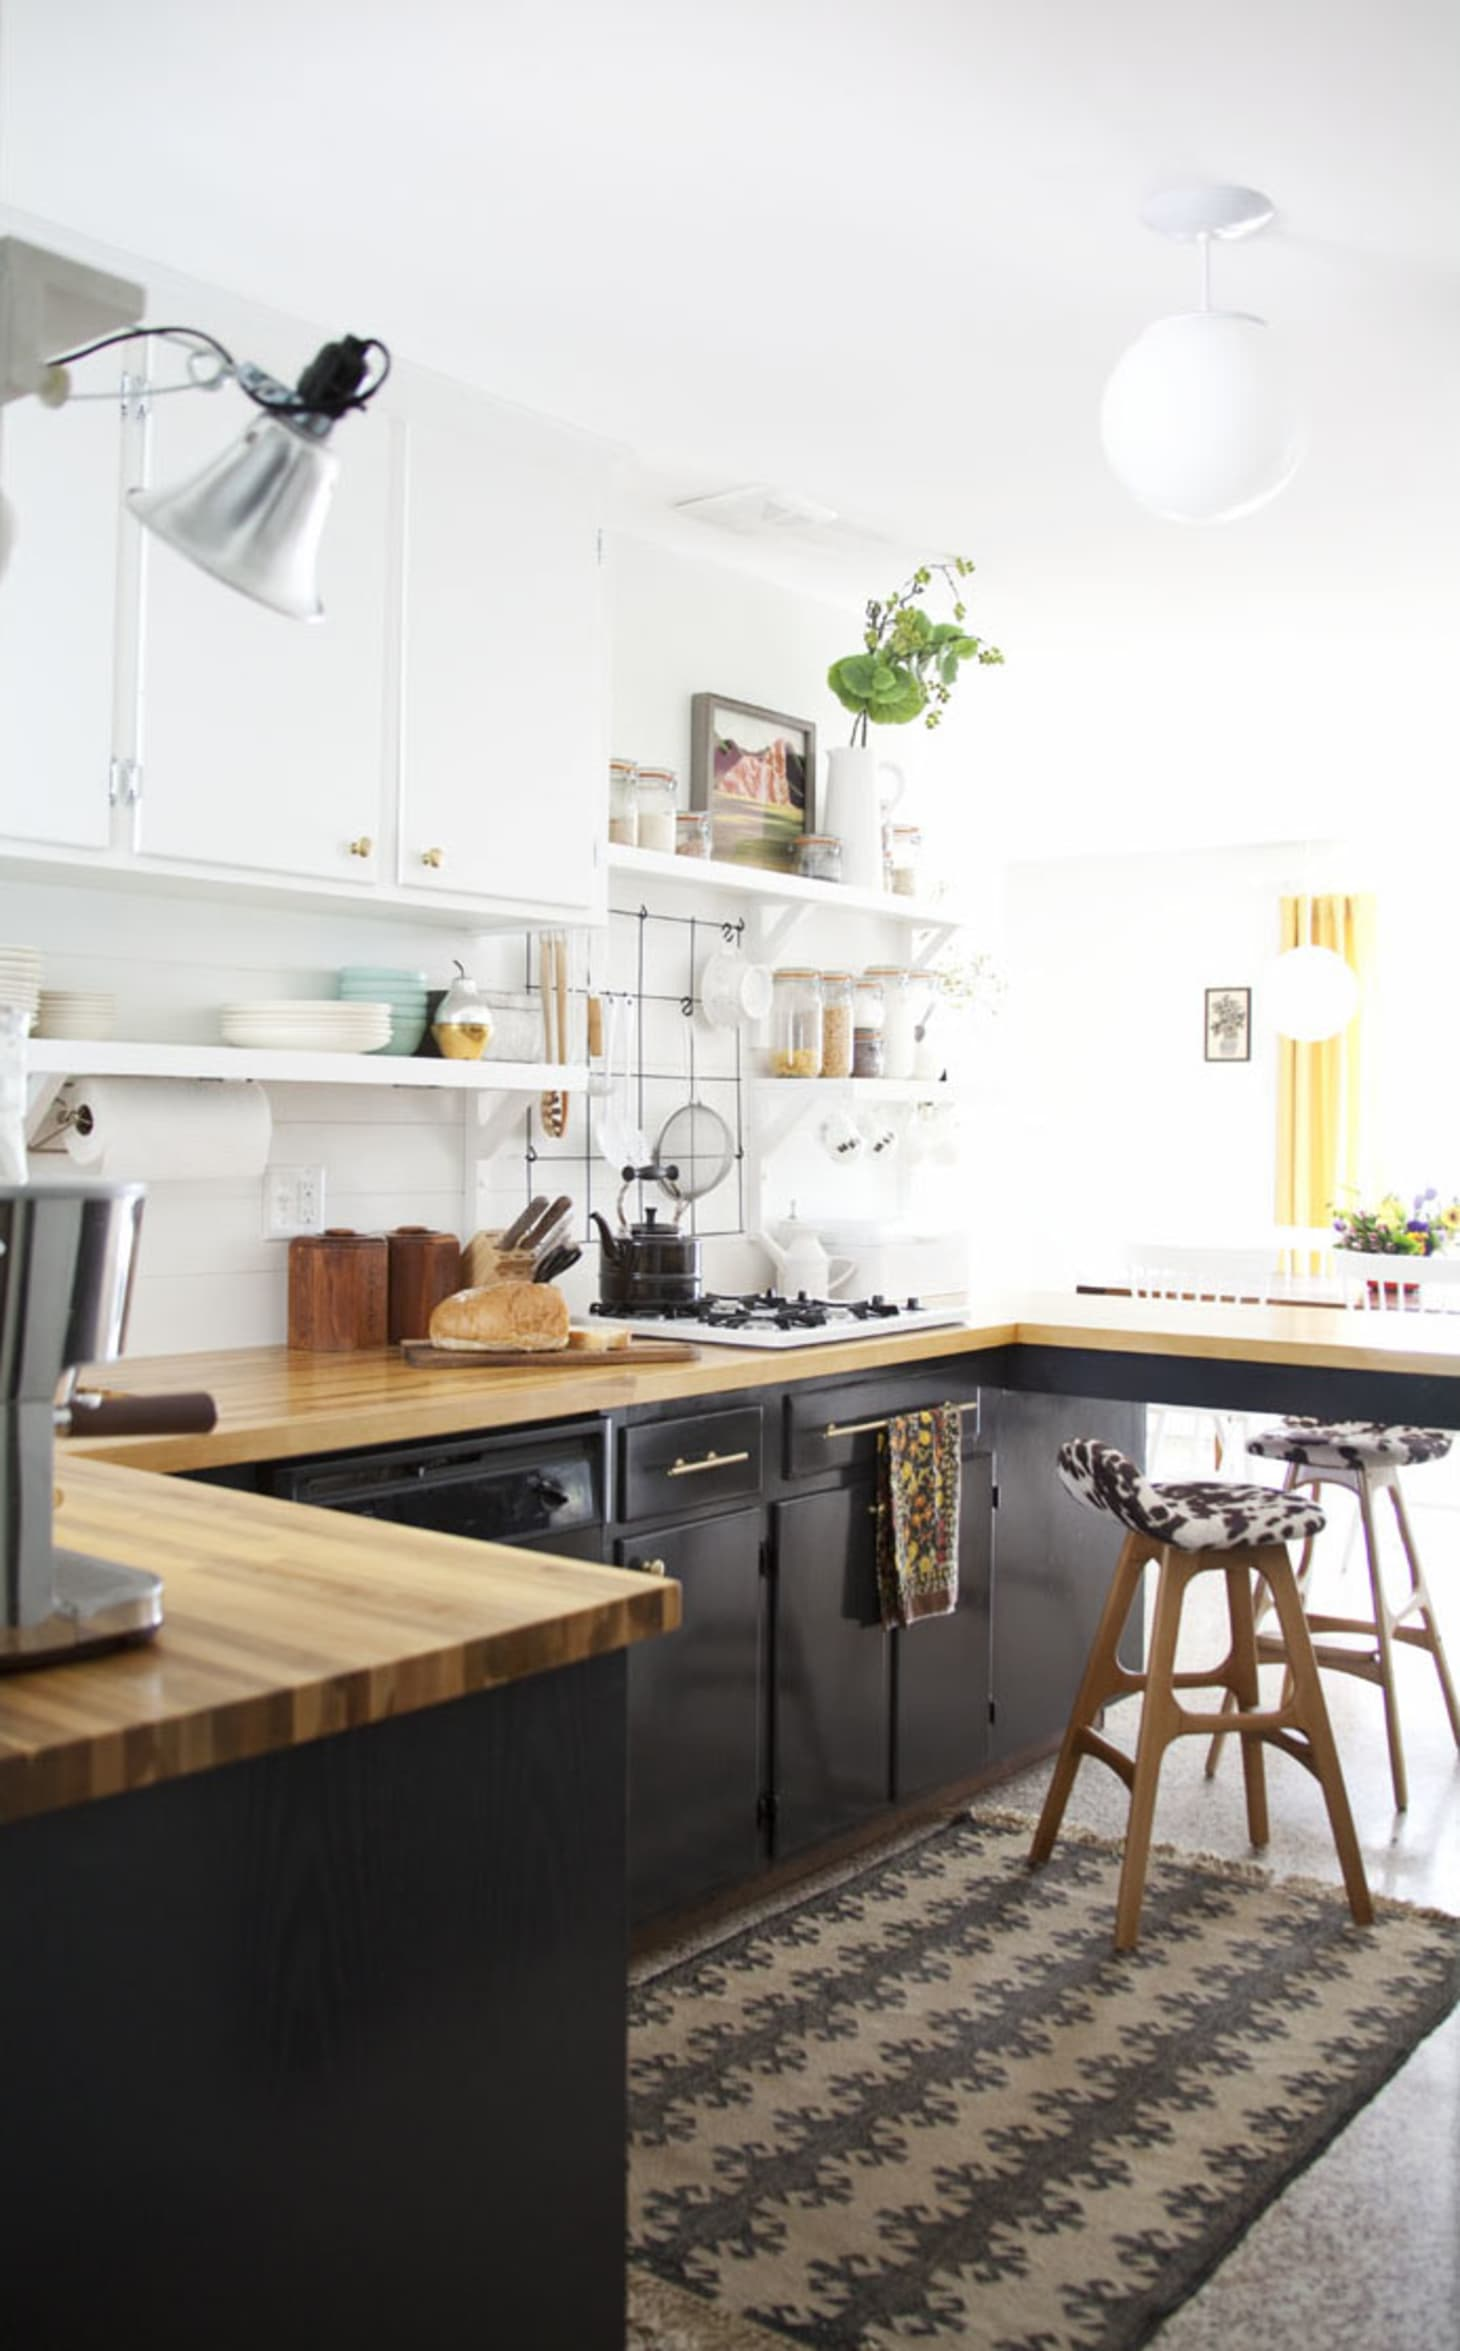 Budget Remodeling: $2,000 to $4,000 Kitchens   Apartment ...